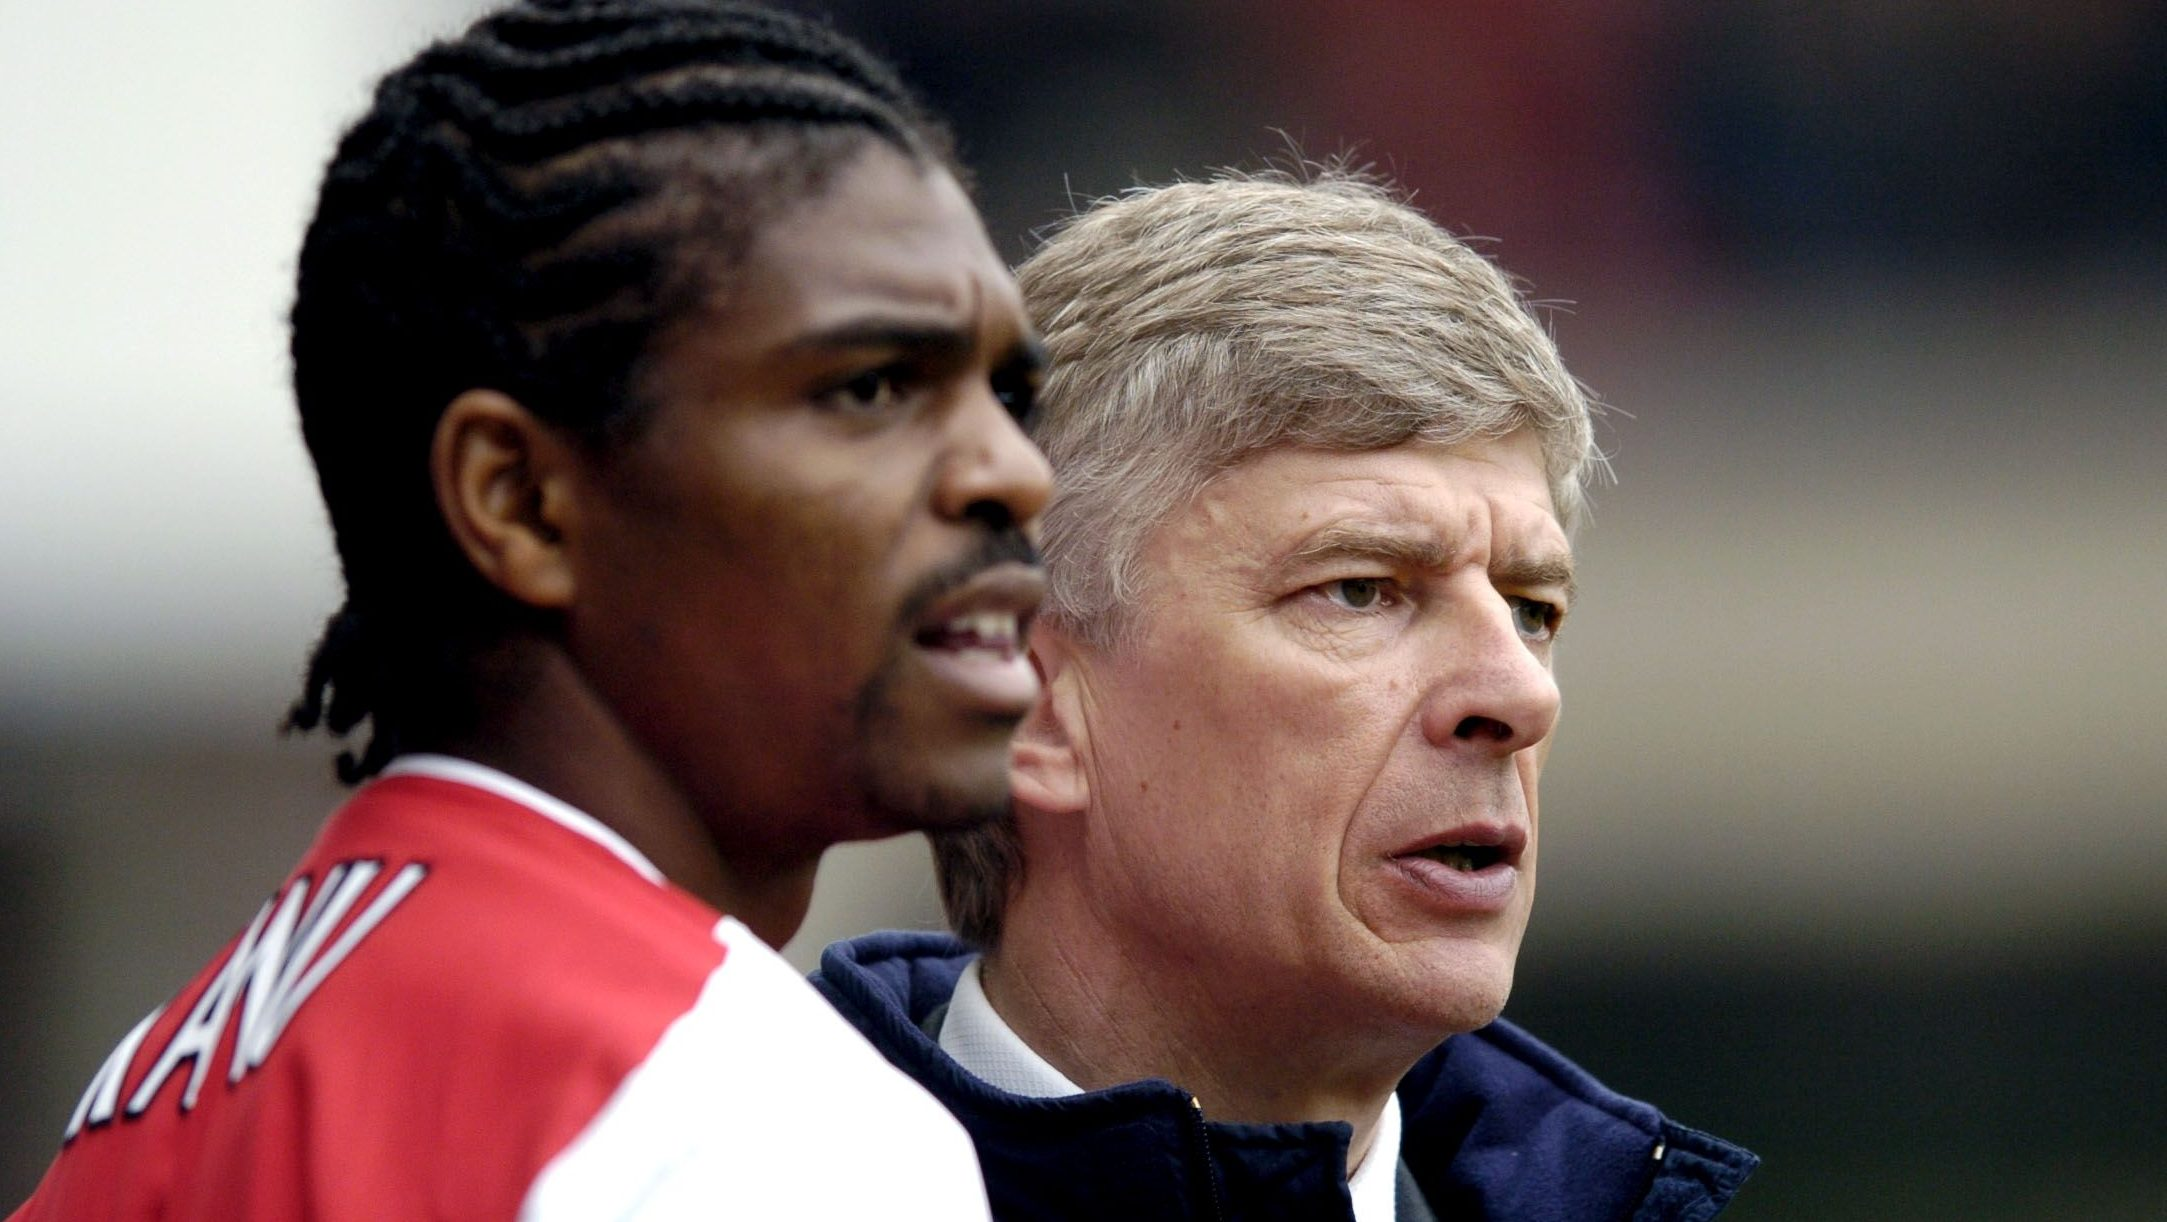 Football - FA Cup Semi-Final - Arsenal v Manchester United - Villa Park - 3/4/04  Arsene Wenger - Arsenal Manager and Nwankwo Kanu